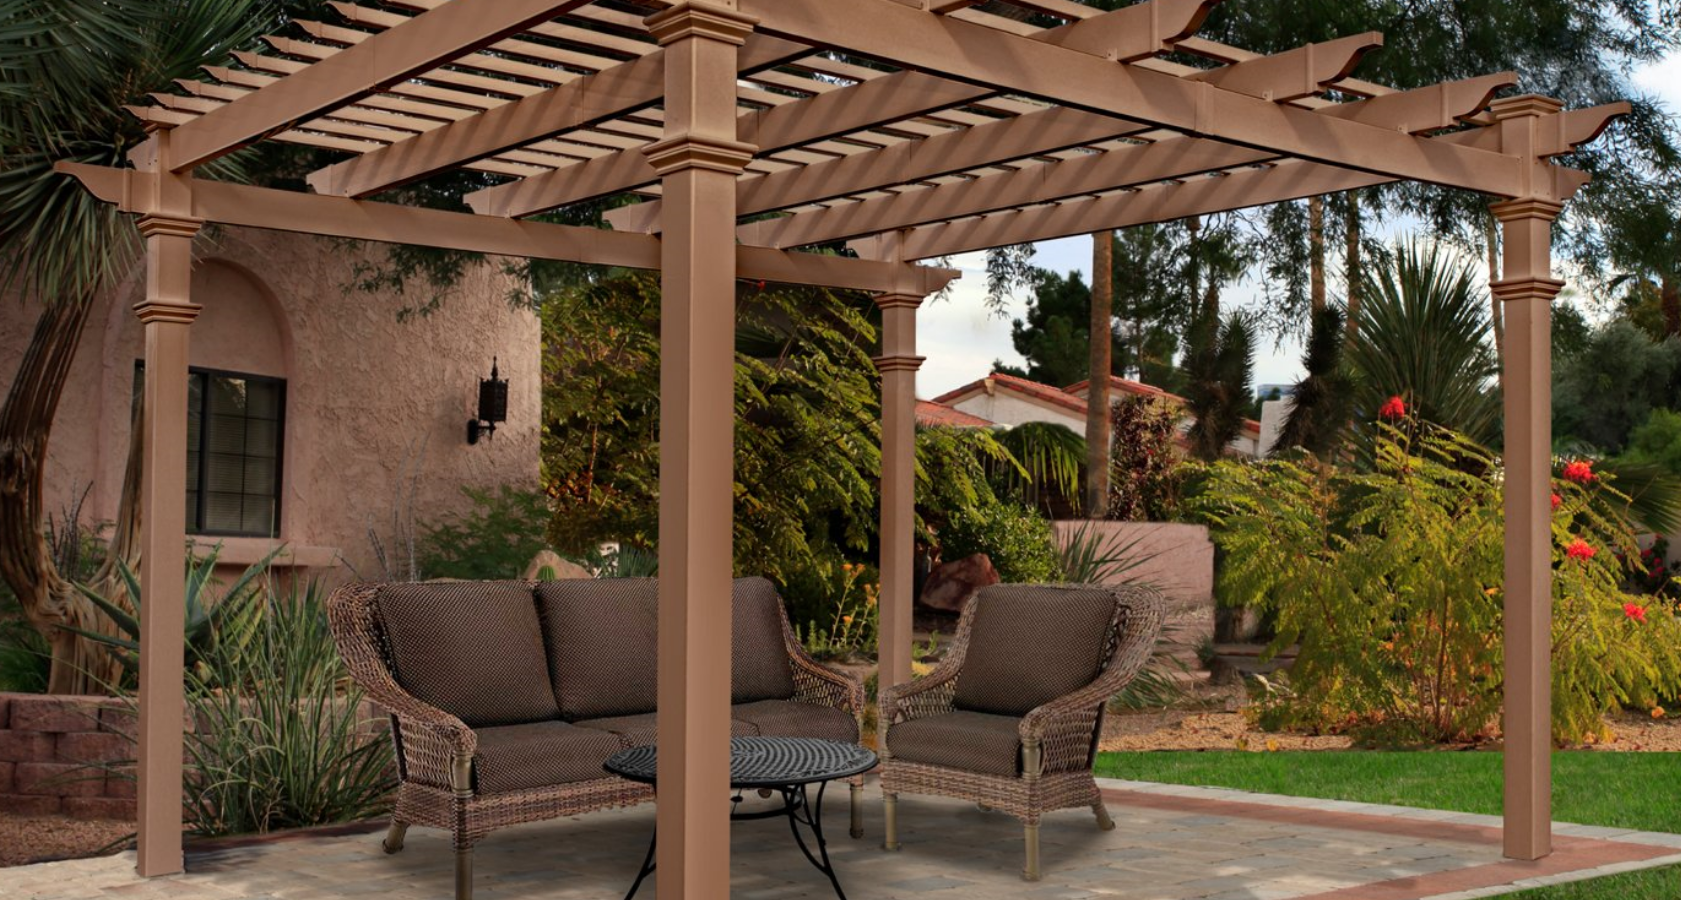 Pergola & Patio Construction